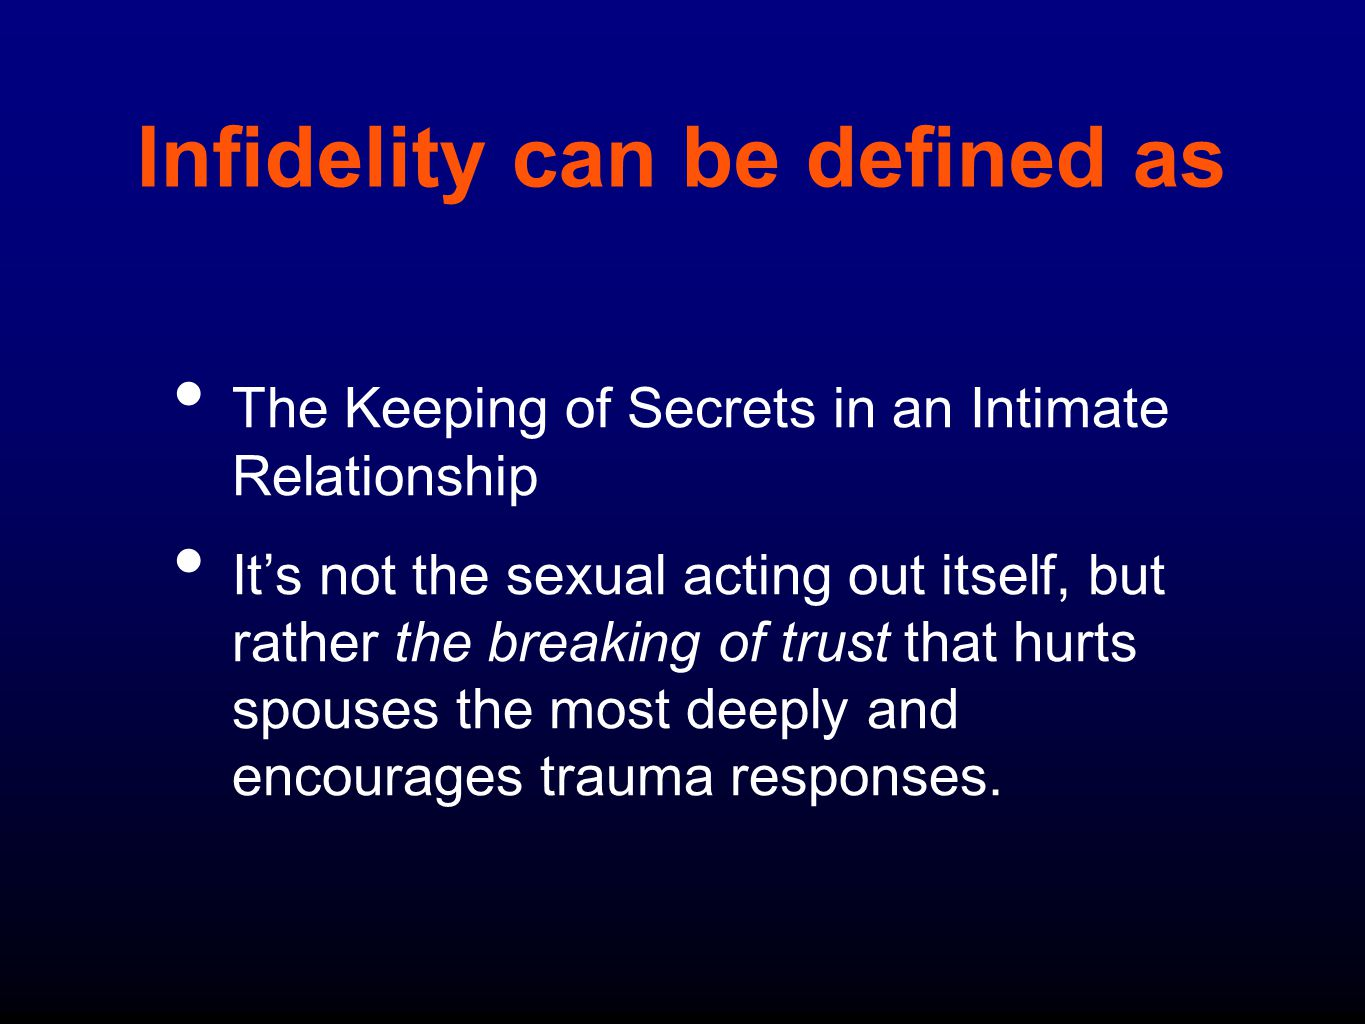 Infidelity can be defined as The Keeping of Secrets in an Intimate Relationship It's not the sexual acting out itself, but rather the breaking of trust that hurts spouses the most deeply and encourages trauma responses.